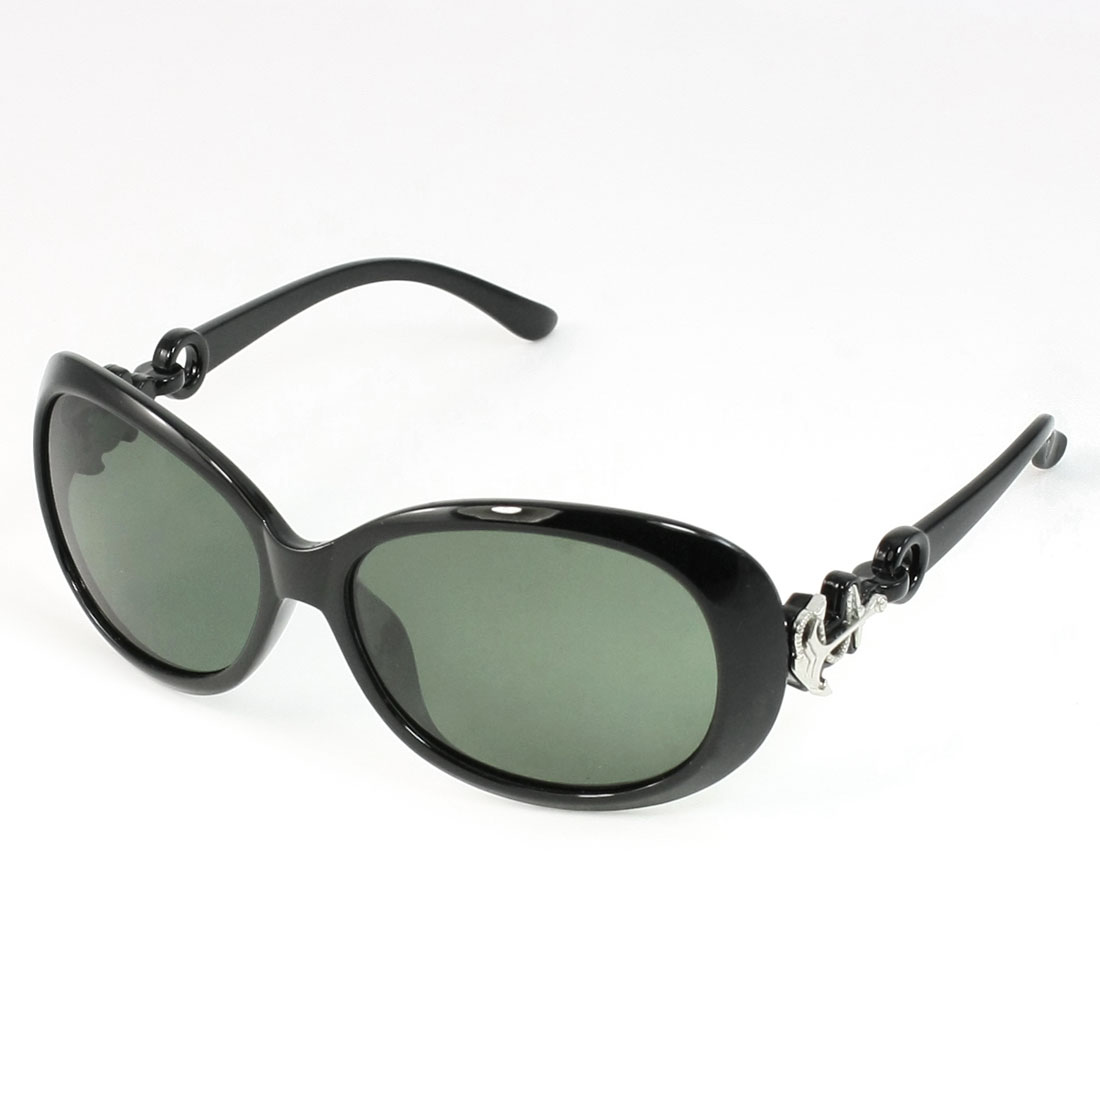 Ladies Outdoor Green Lens Plastic Black Frame Polarized Sunglasses Eyewear